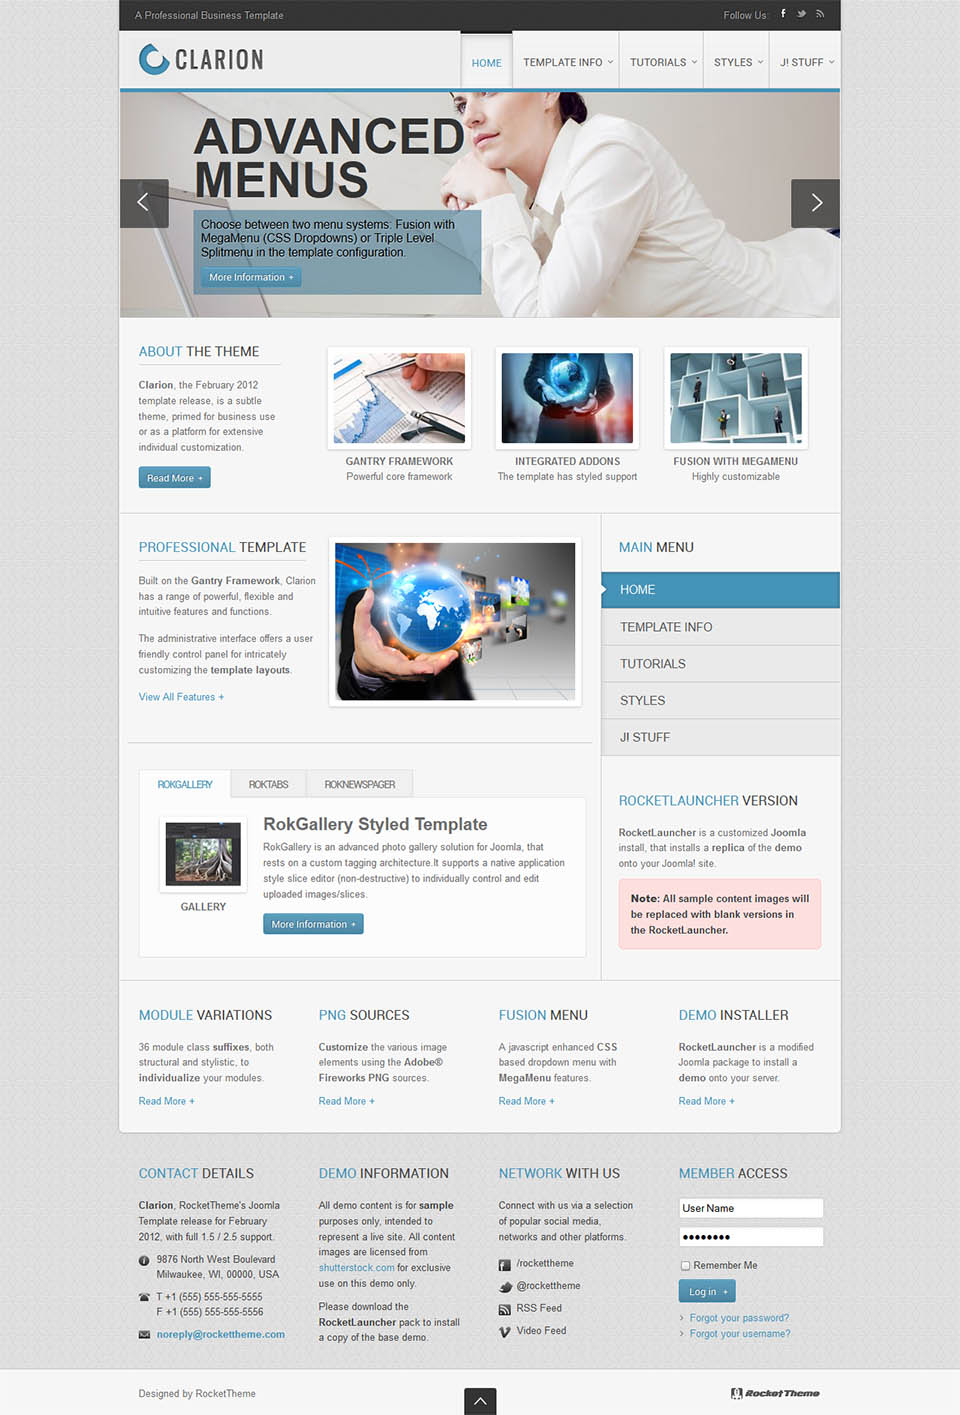 RocketTheme Clarion v1.11.0 - corporate template for Joomla